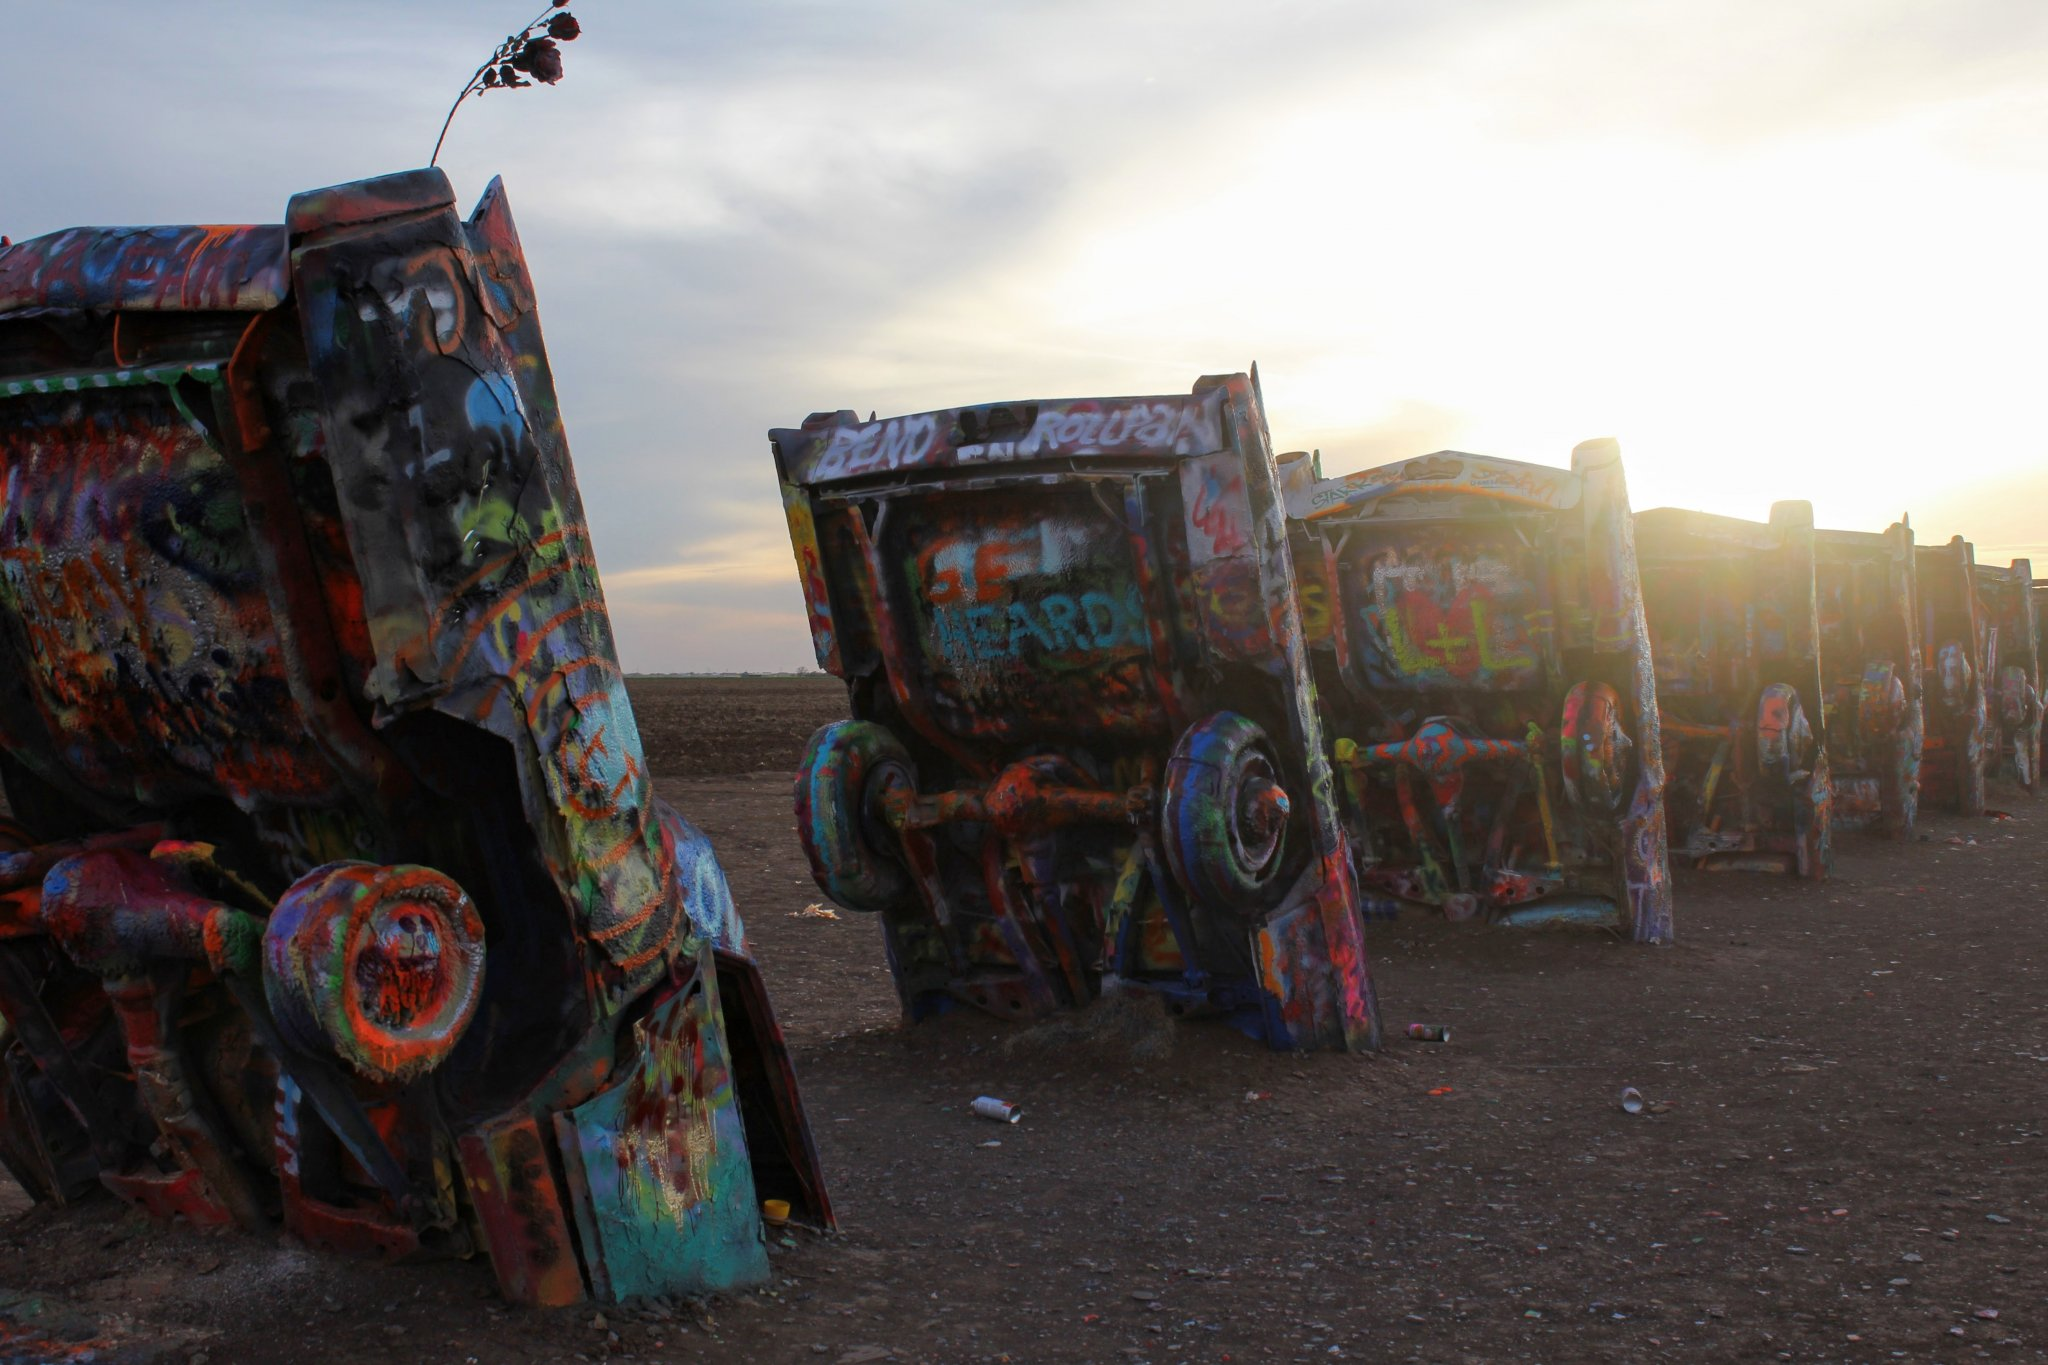 Offbeat Things to Do in Amarillo : Cadillac Ranch